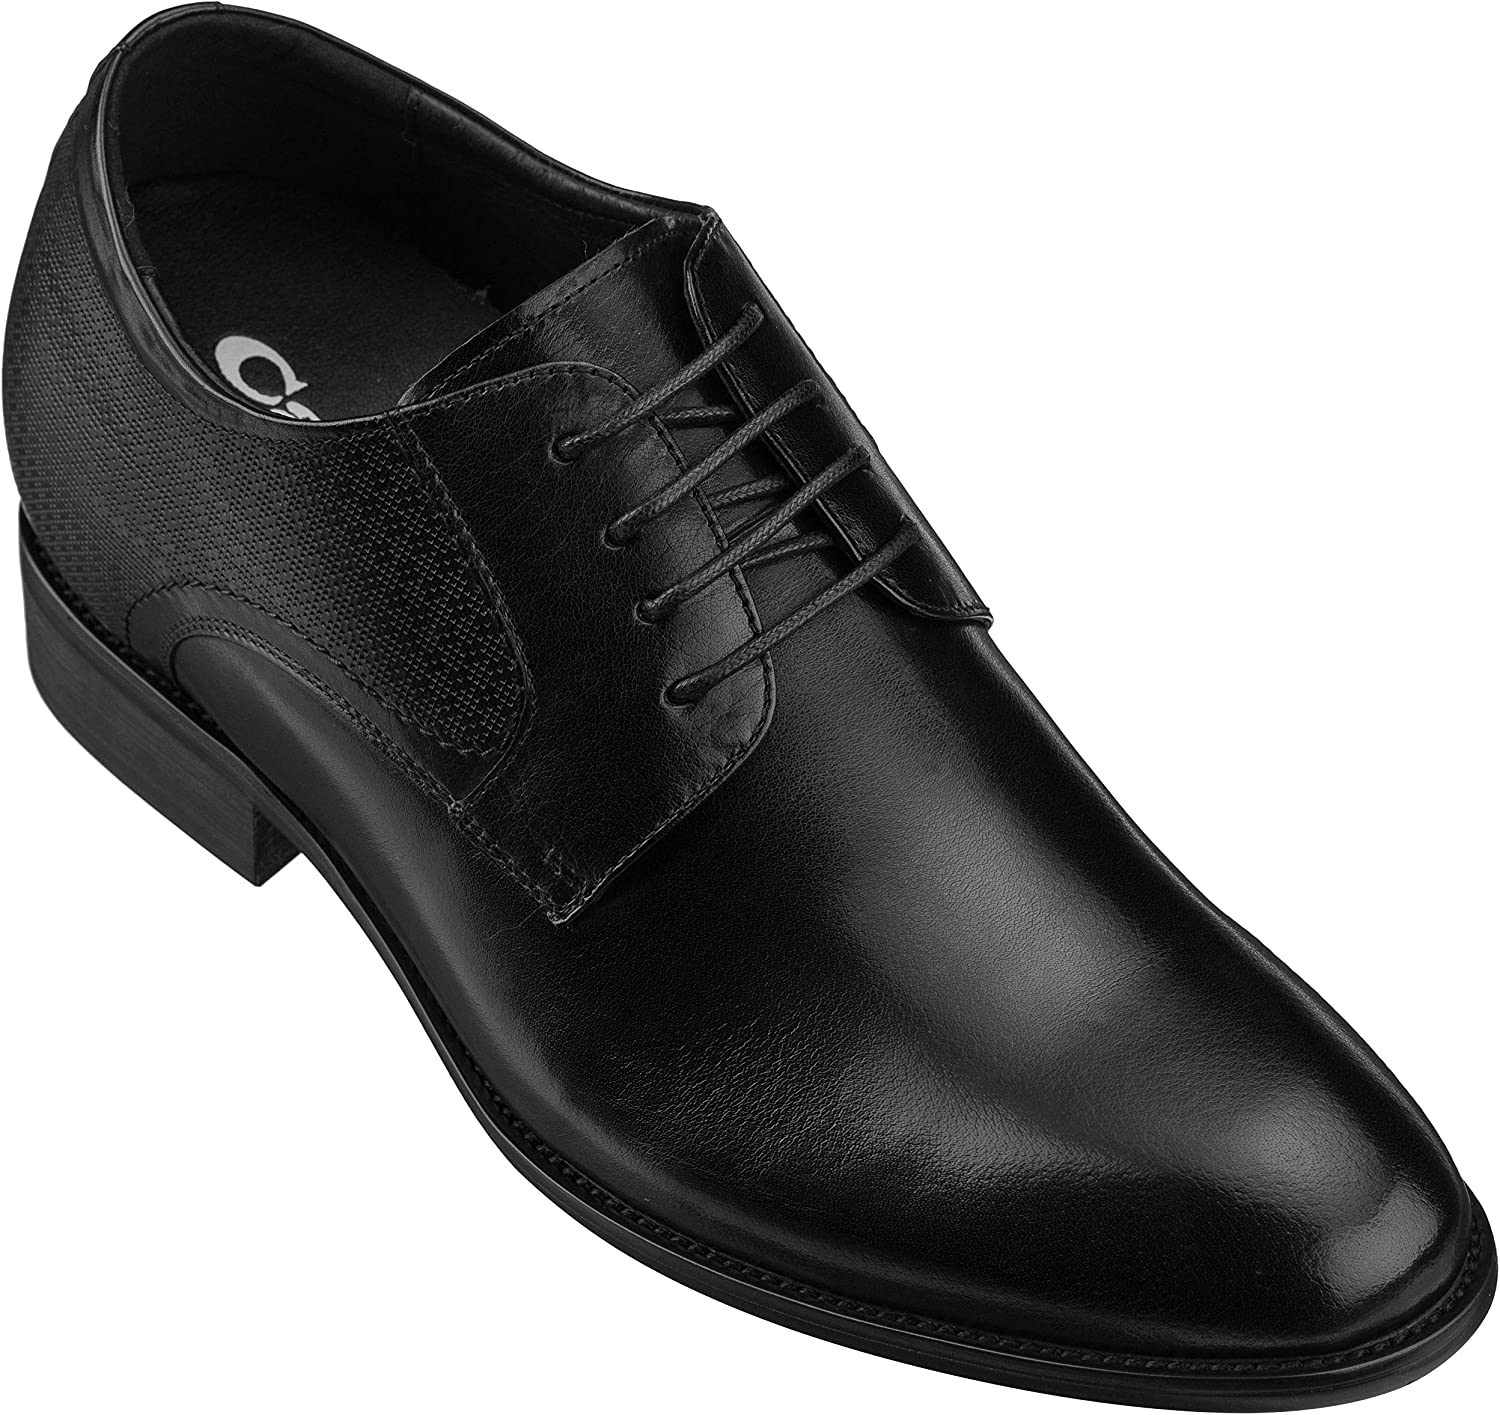 CALTO Men's Invisible Height Increasing Elevator shoes - Black Premium Leather Lace-up Formal Oxfords - 2.8 Inches Taller - Y1001